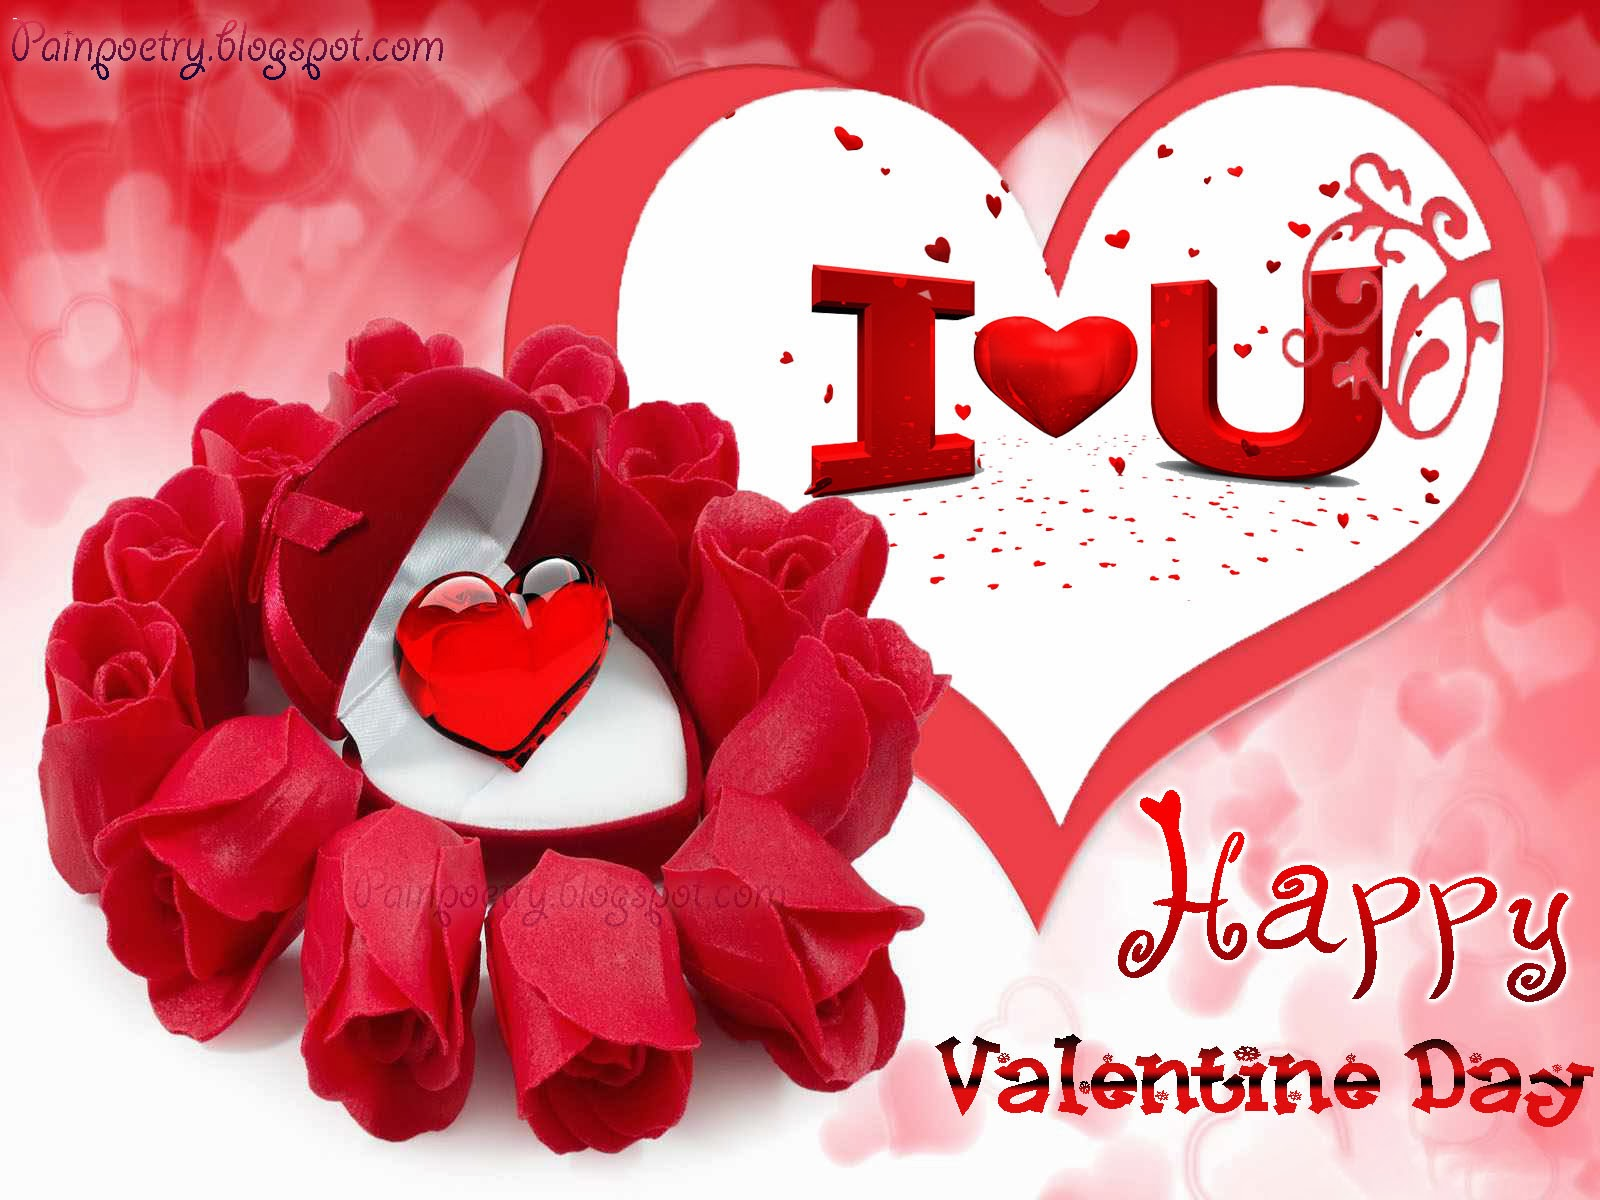 Happy Valentines Day Love Wallpapers With Greetings Quotes Poetry About Wishes Festivals